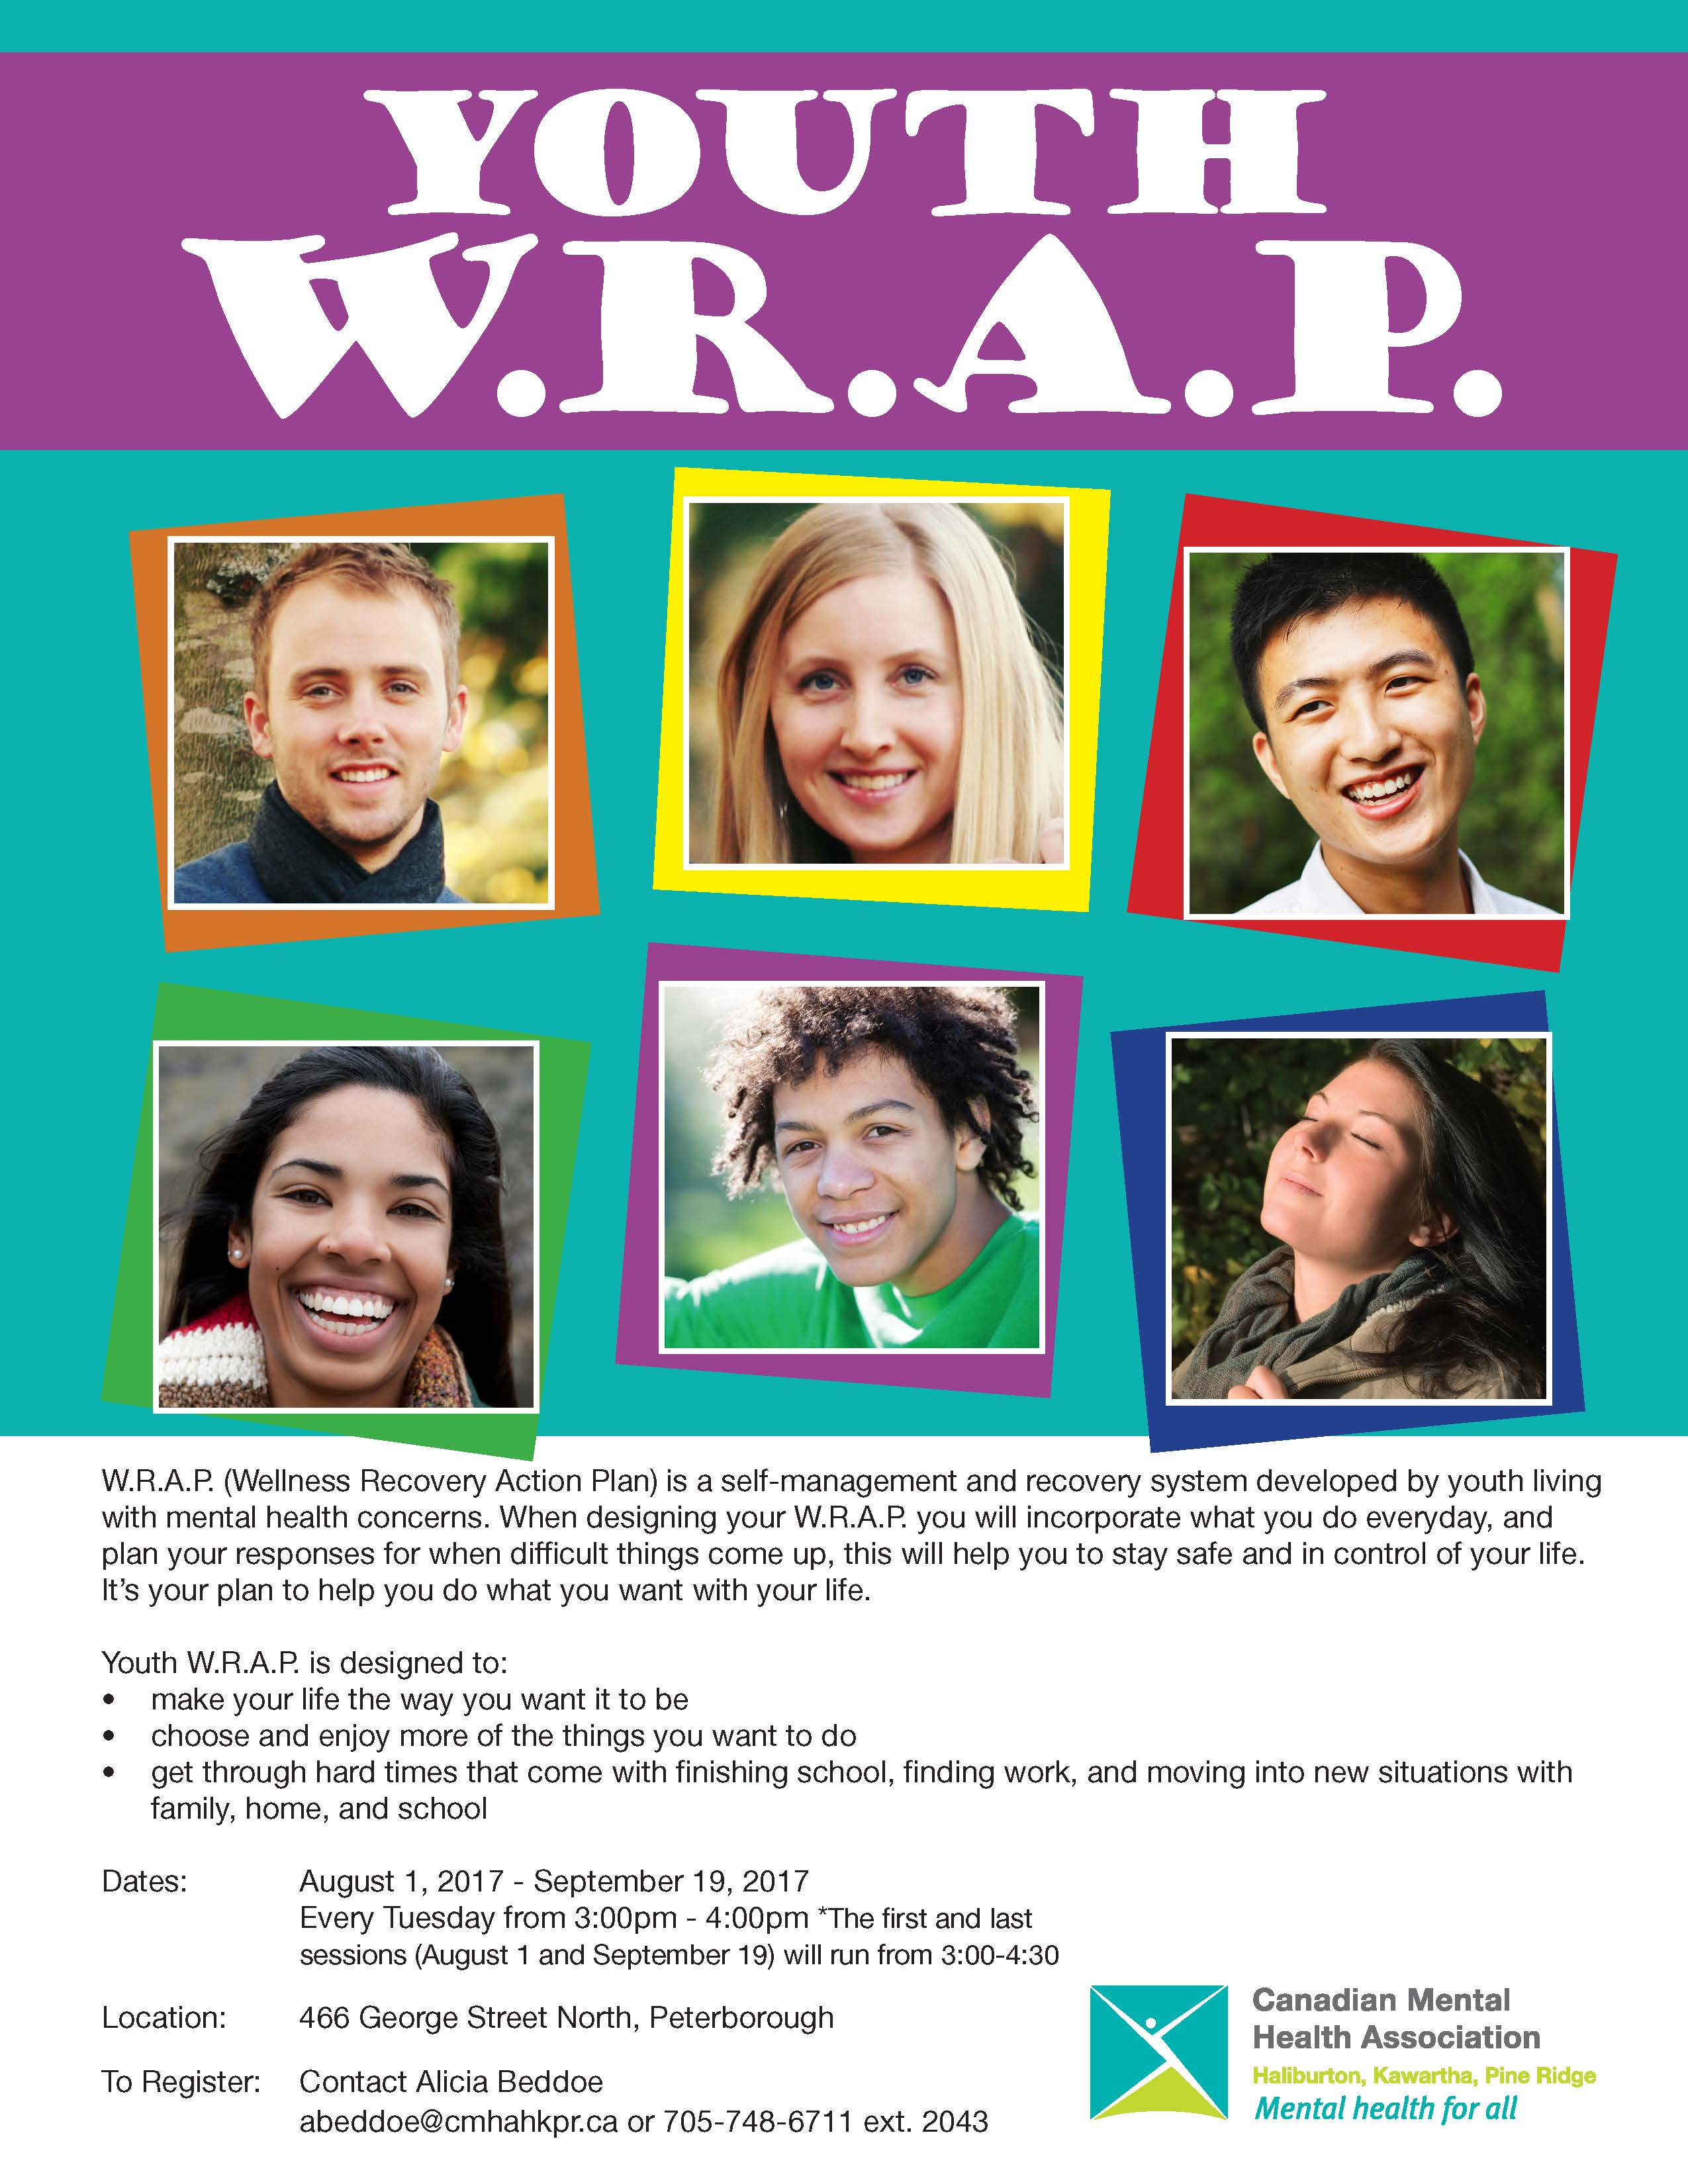 W.R.A.P. (Wellness Recovery Action Plan) is a self-management and recovery system developed by youth living with mental health concerns. When designing your W.R.A.P. you will incorporate what you do everyday, and plan your responses for when difficult things come up, this will help you to stay safe and in control of your life. It's your plan to help you do what you want with your life.